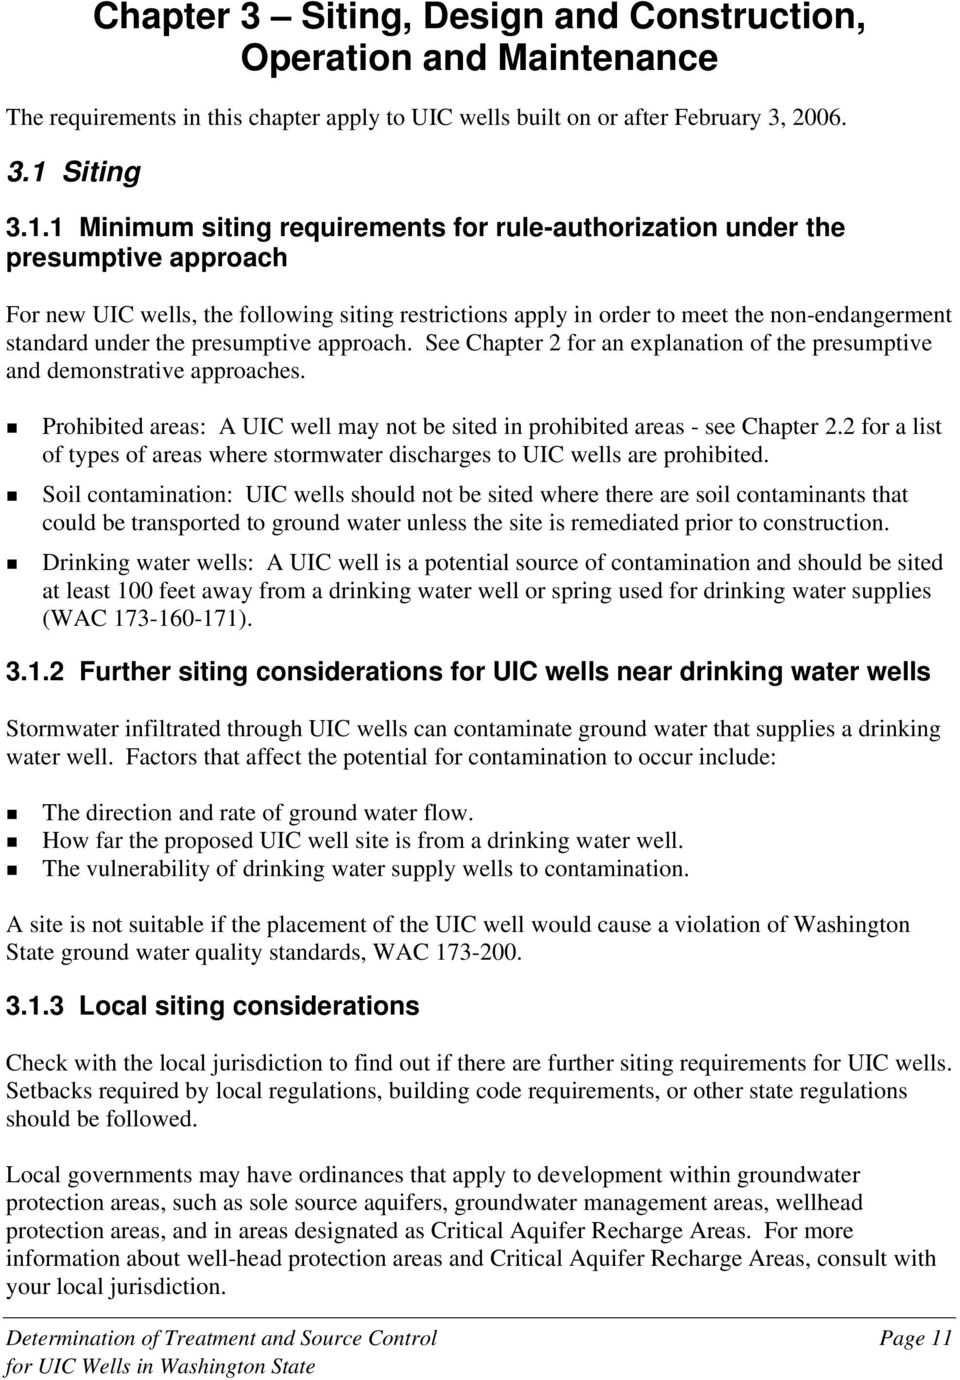 1 Minimum siting requirements for rule-authorization under the presumptive approach For new UIC wells, the following siting restrictions apply in order to meet the non-endangerment standard under the